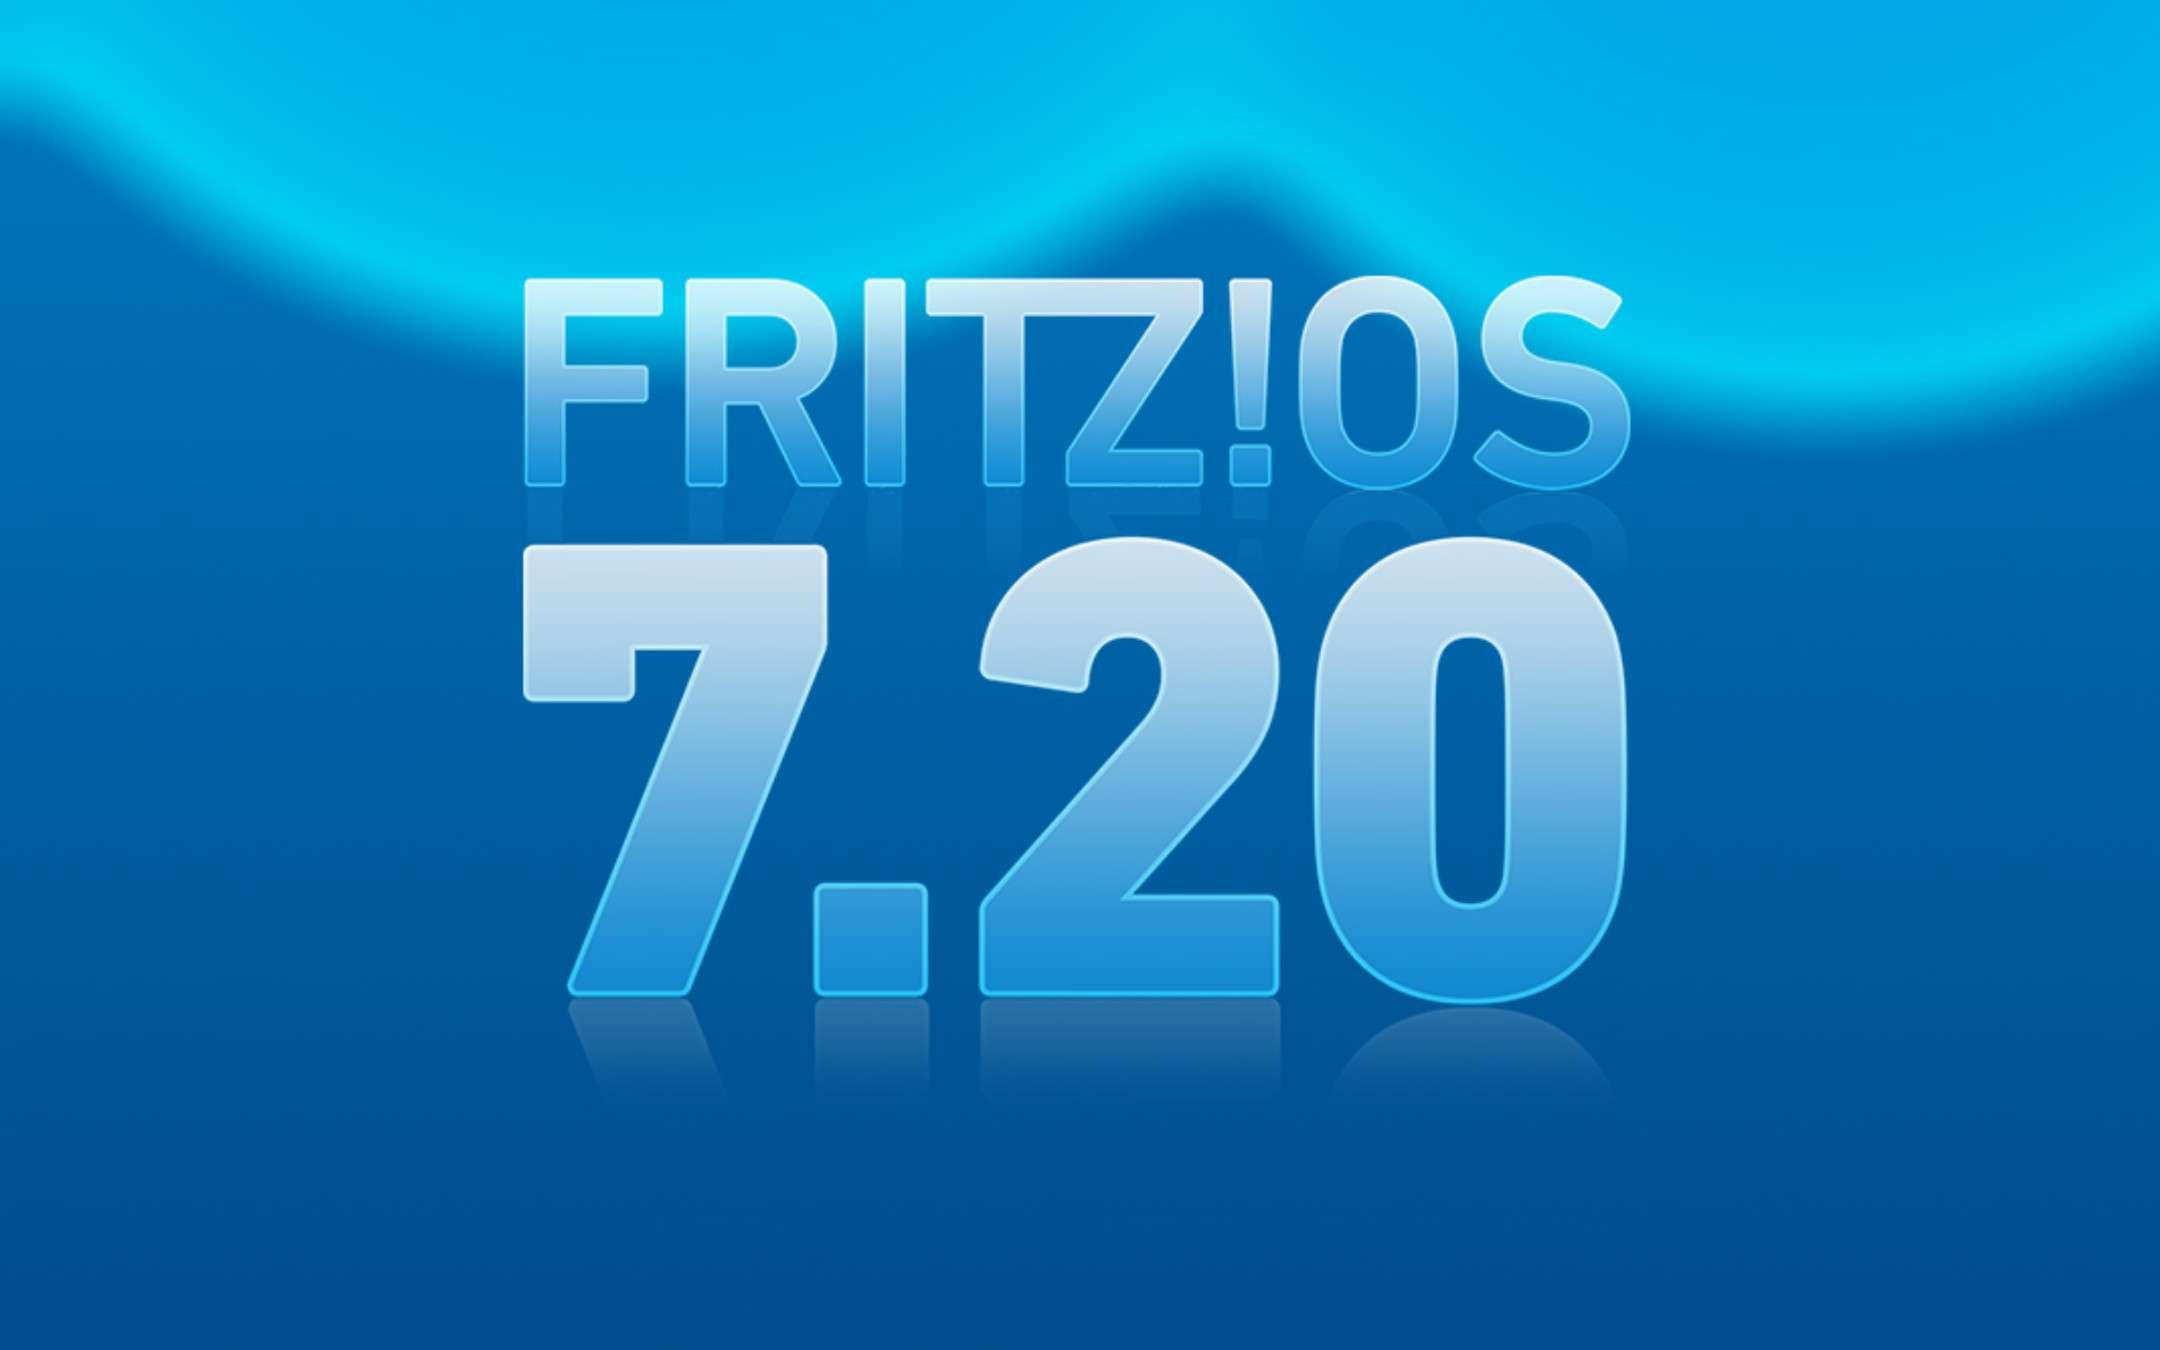 AVM, all Fritz upgrade to the new OS 7.20